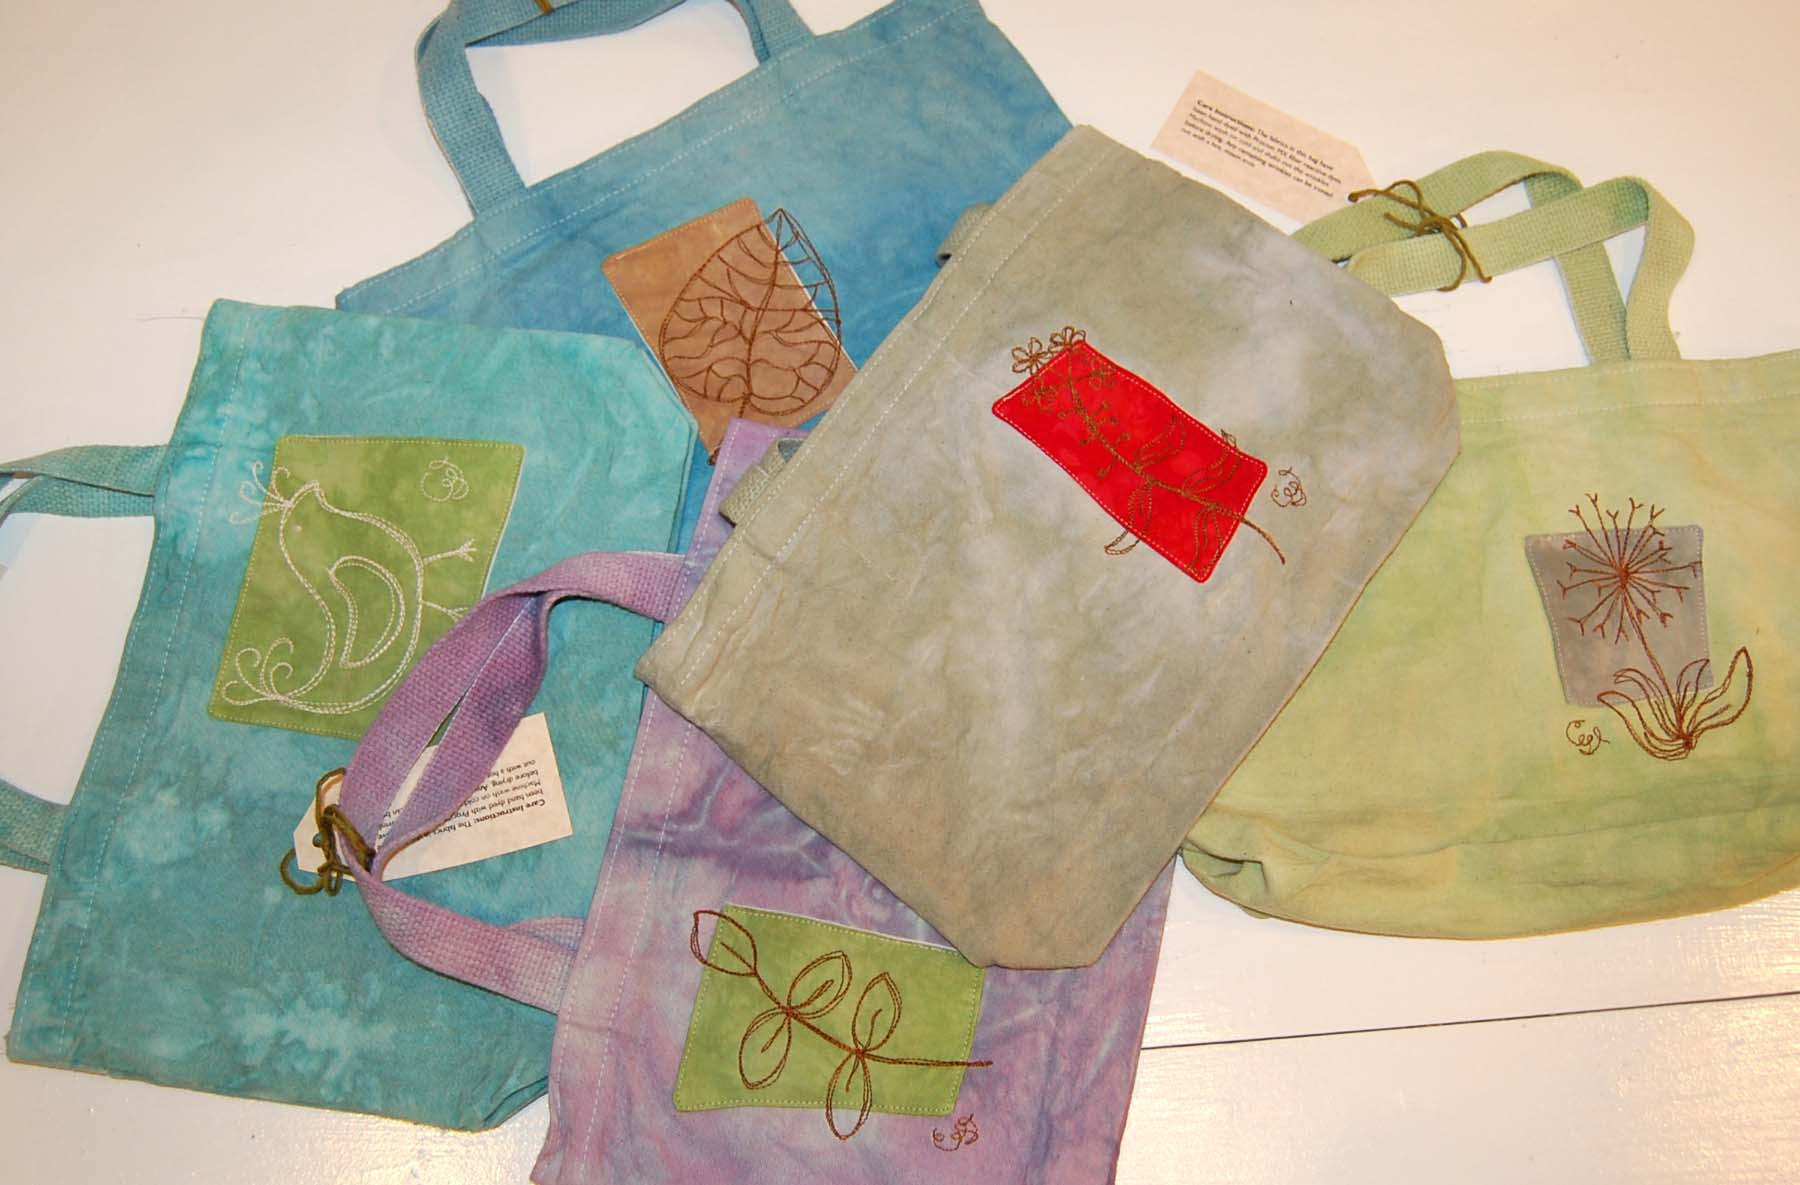 """Going Green Pockets Tote 13"""" x 21/2"""" x 81/2""""  with single handle and 2 patch pockets on outside back"""